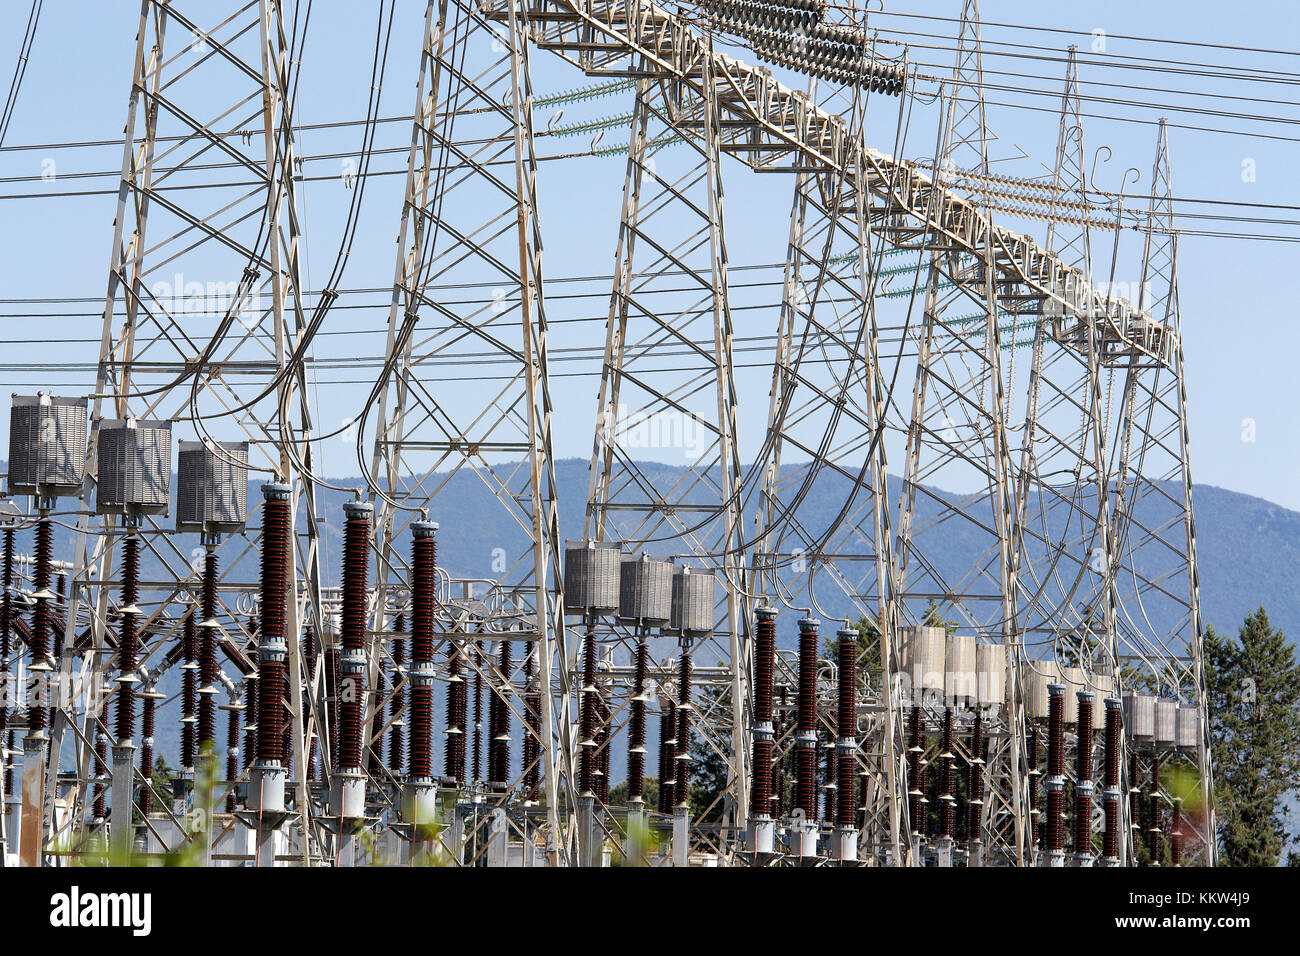 Power plant - high voltage cables, power factory - Stock Image